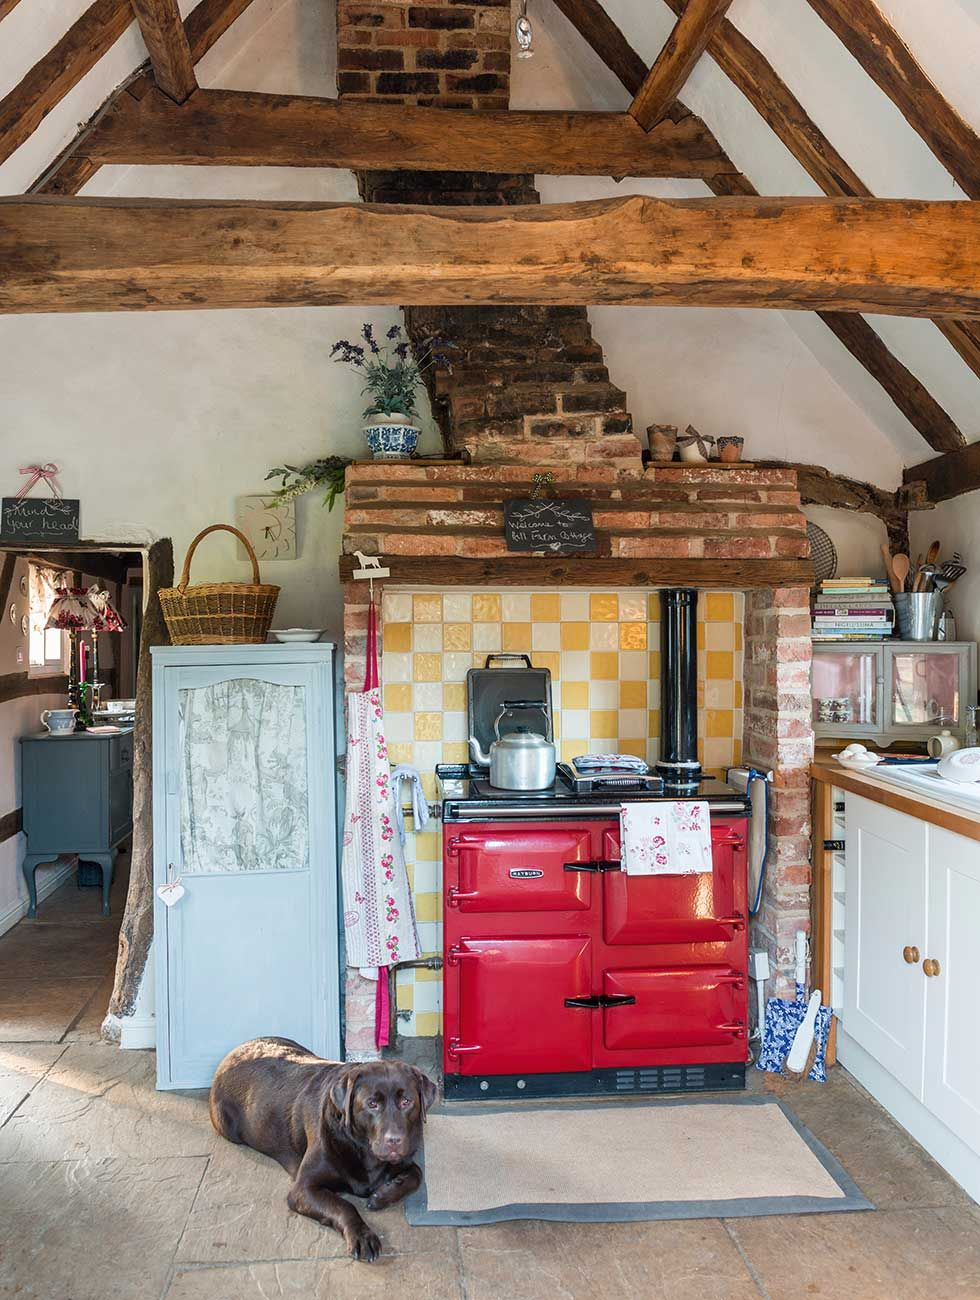 Irish Country Kitchens An Mud And Stud Thatched Cottage Built In The 1800s Has Been